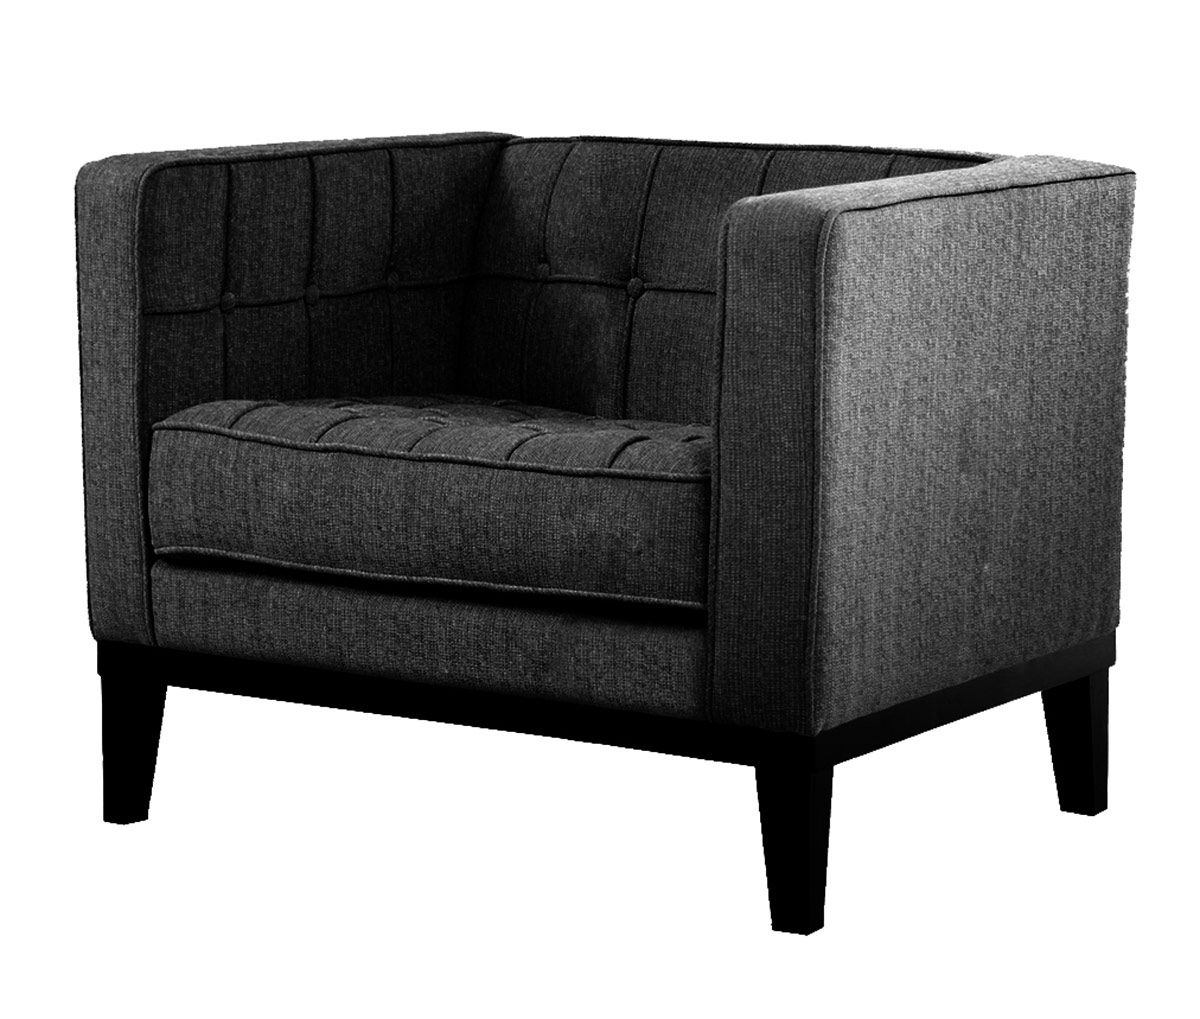 Armen Living Roxbury Arm Chair - Charcoal Fabric